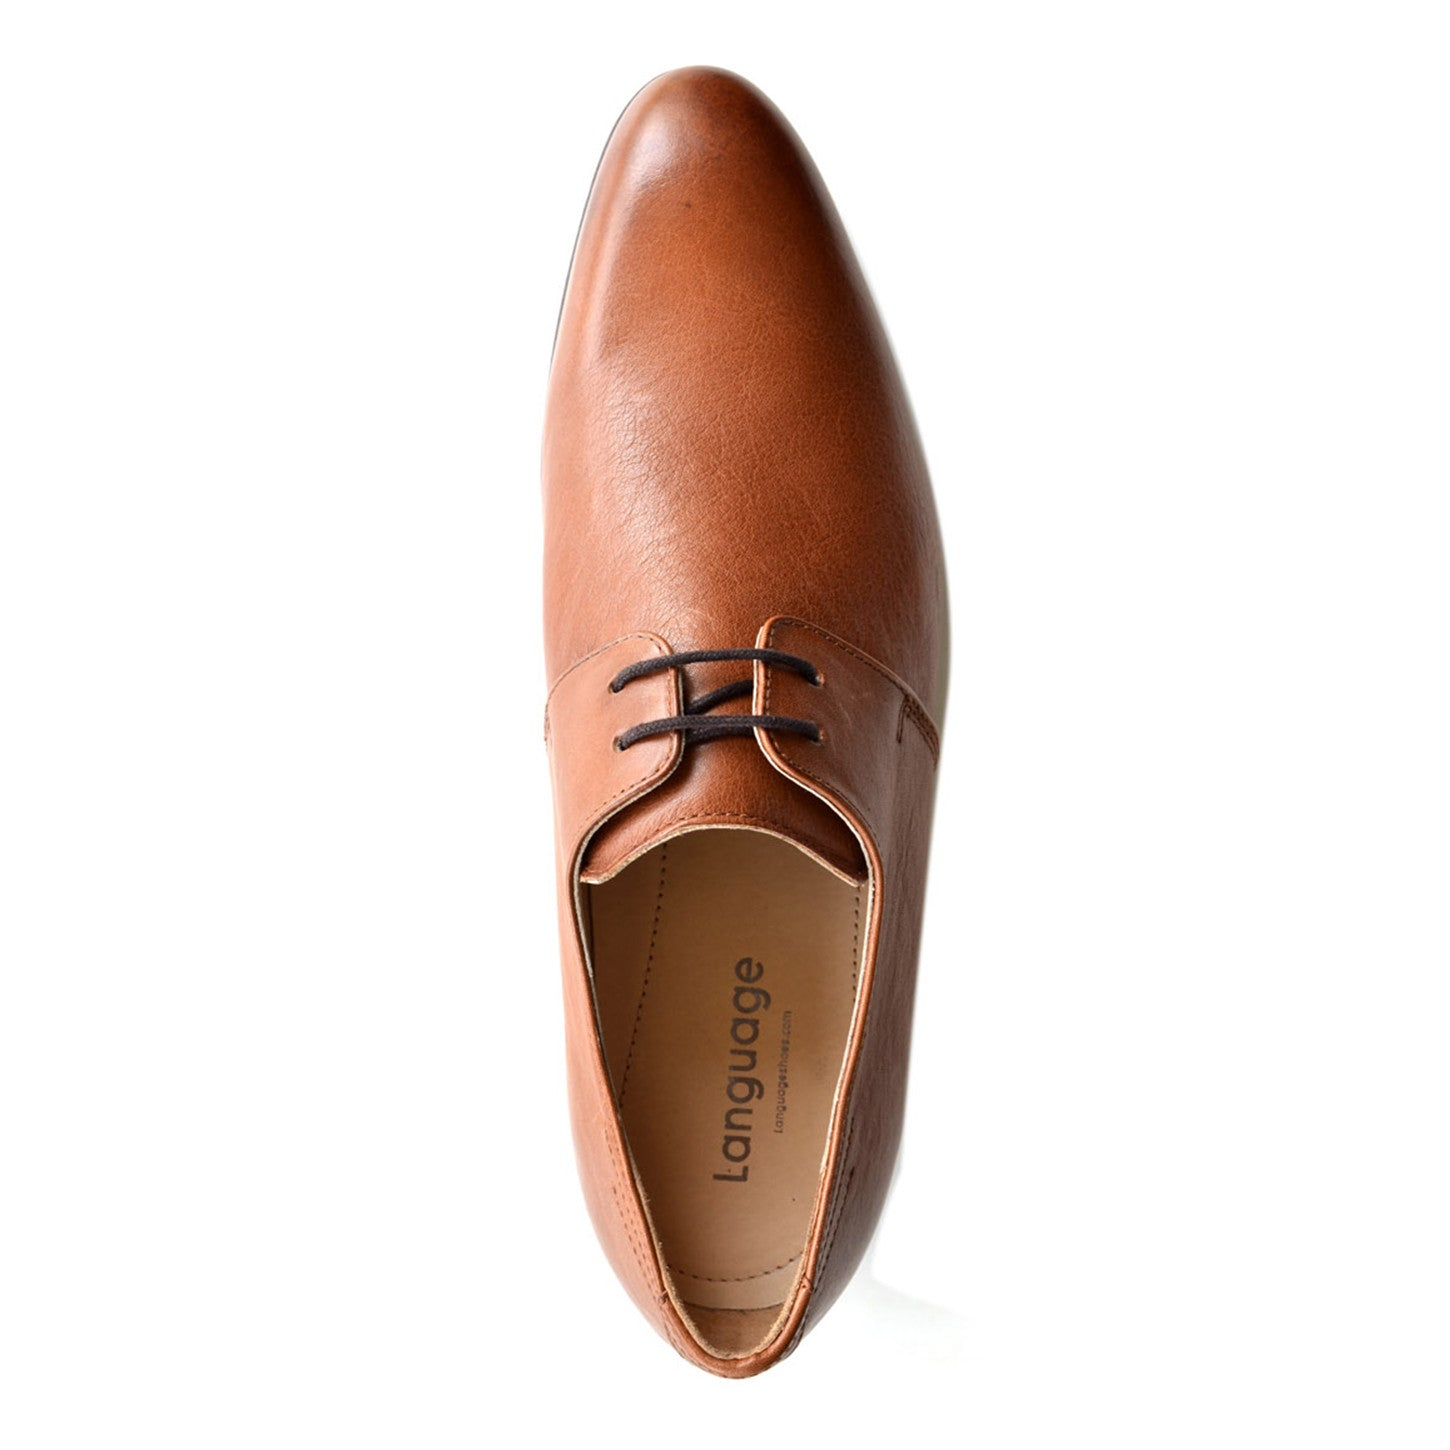 LM041 - Language Ochen Men's Formal Tan Derby Shoes